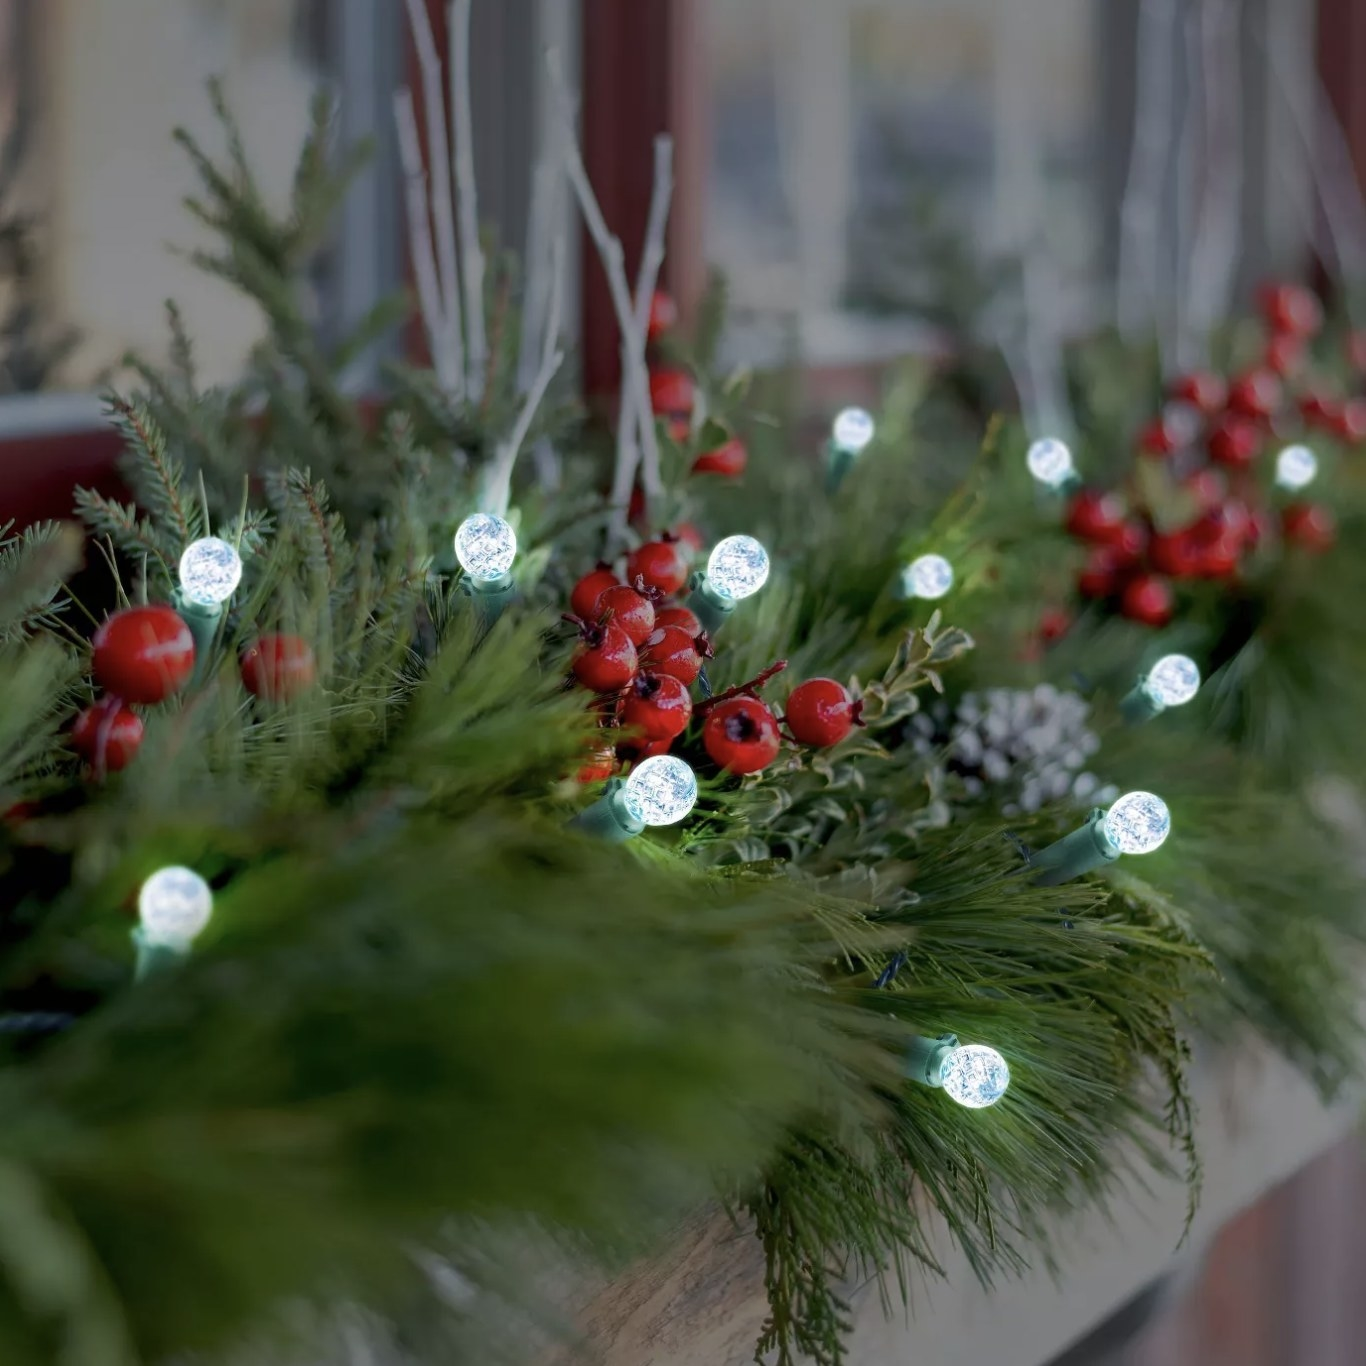 The lights on a garland